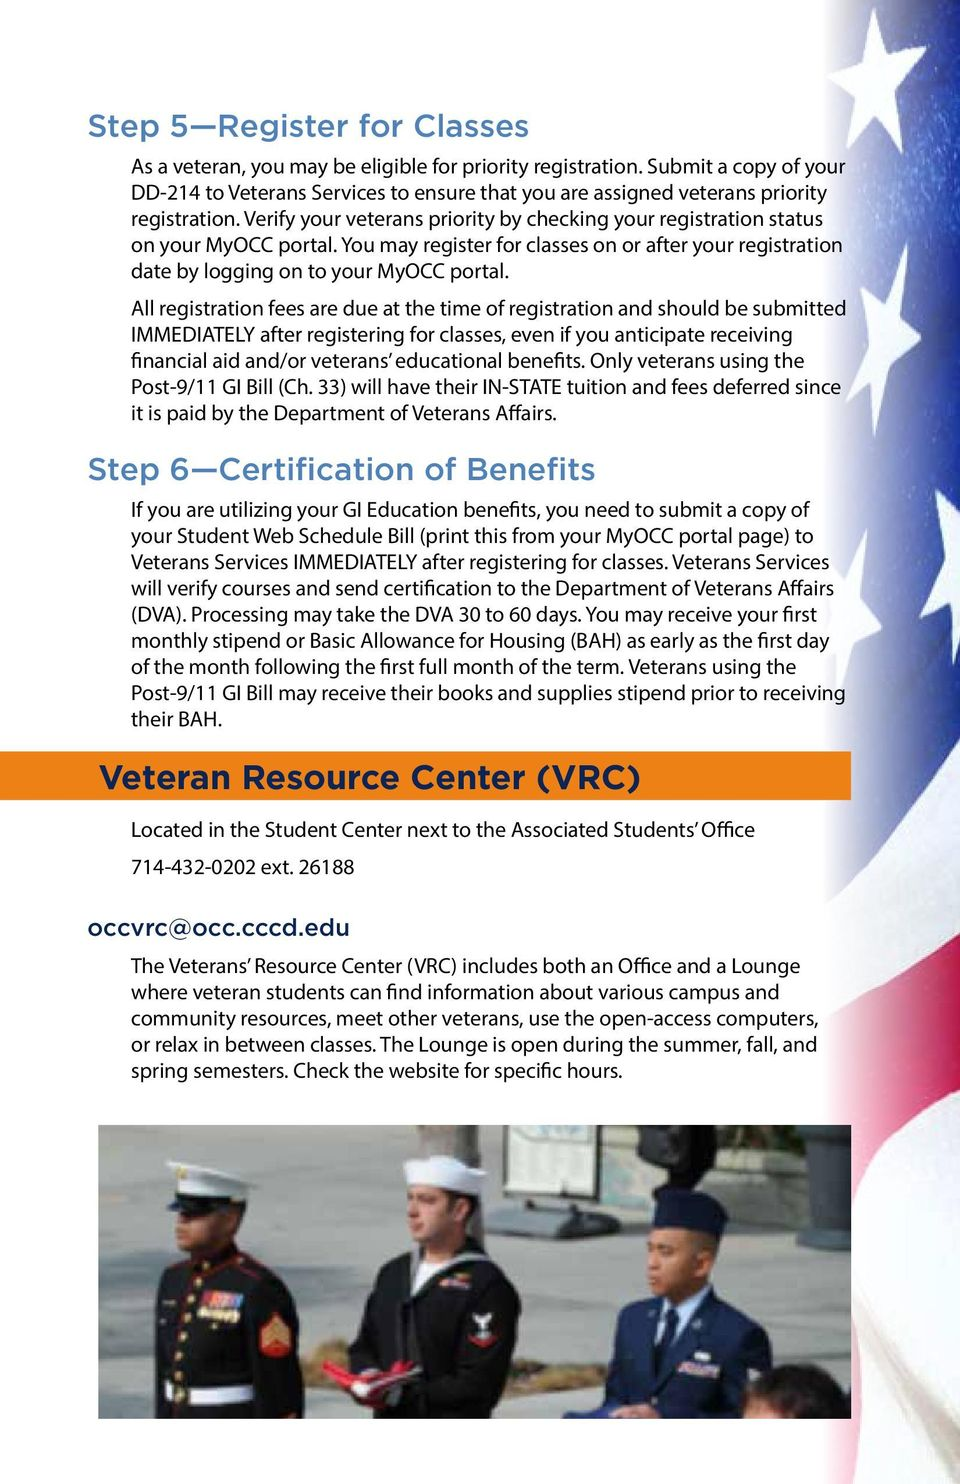 Verify your veterans priority by checking your registration status on your MyOCC portal. You may register for classes on or after your registration date by logging on to your MyOCC portal.